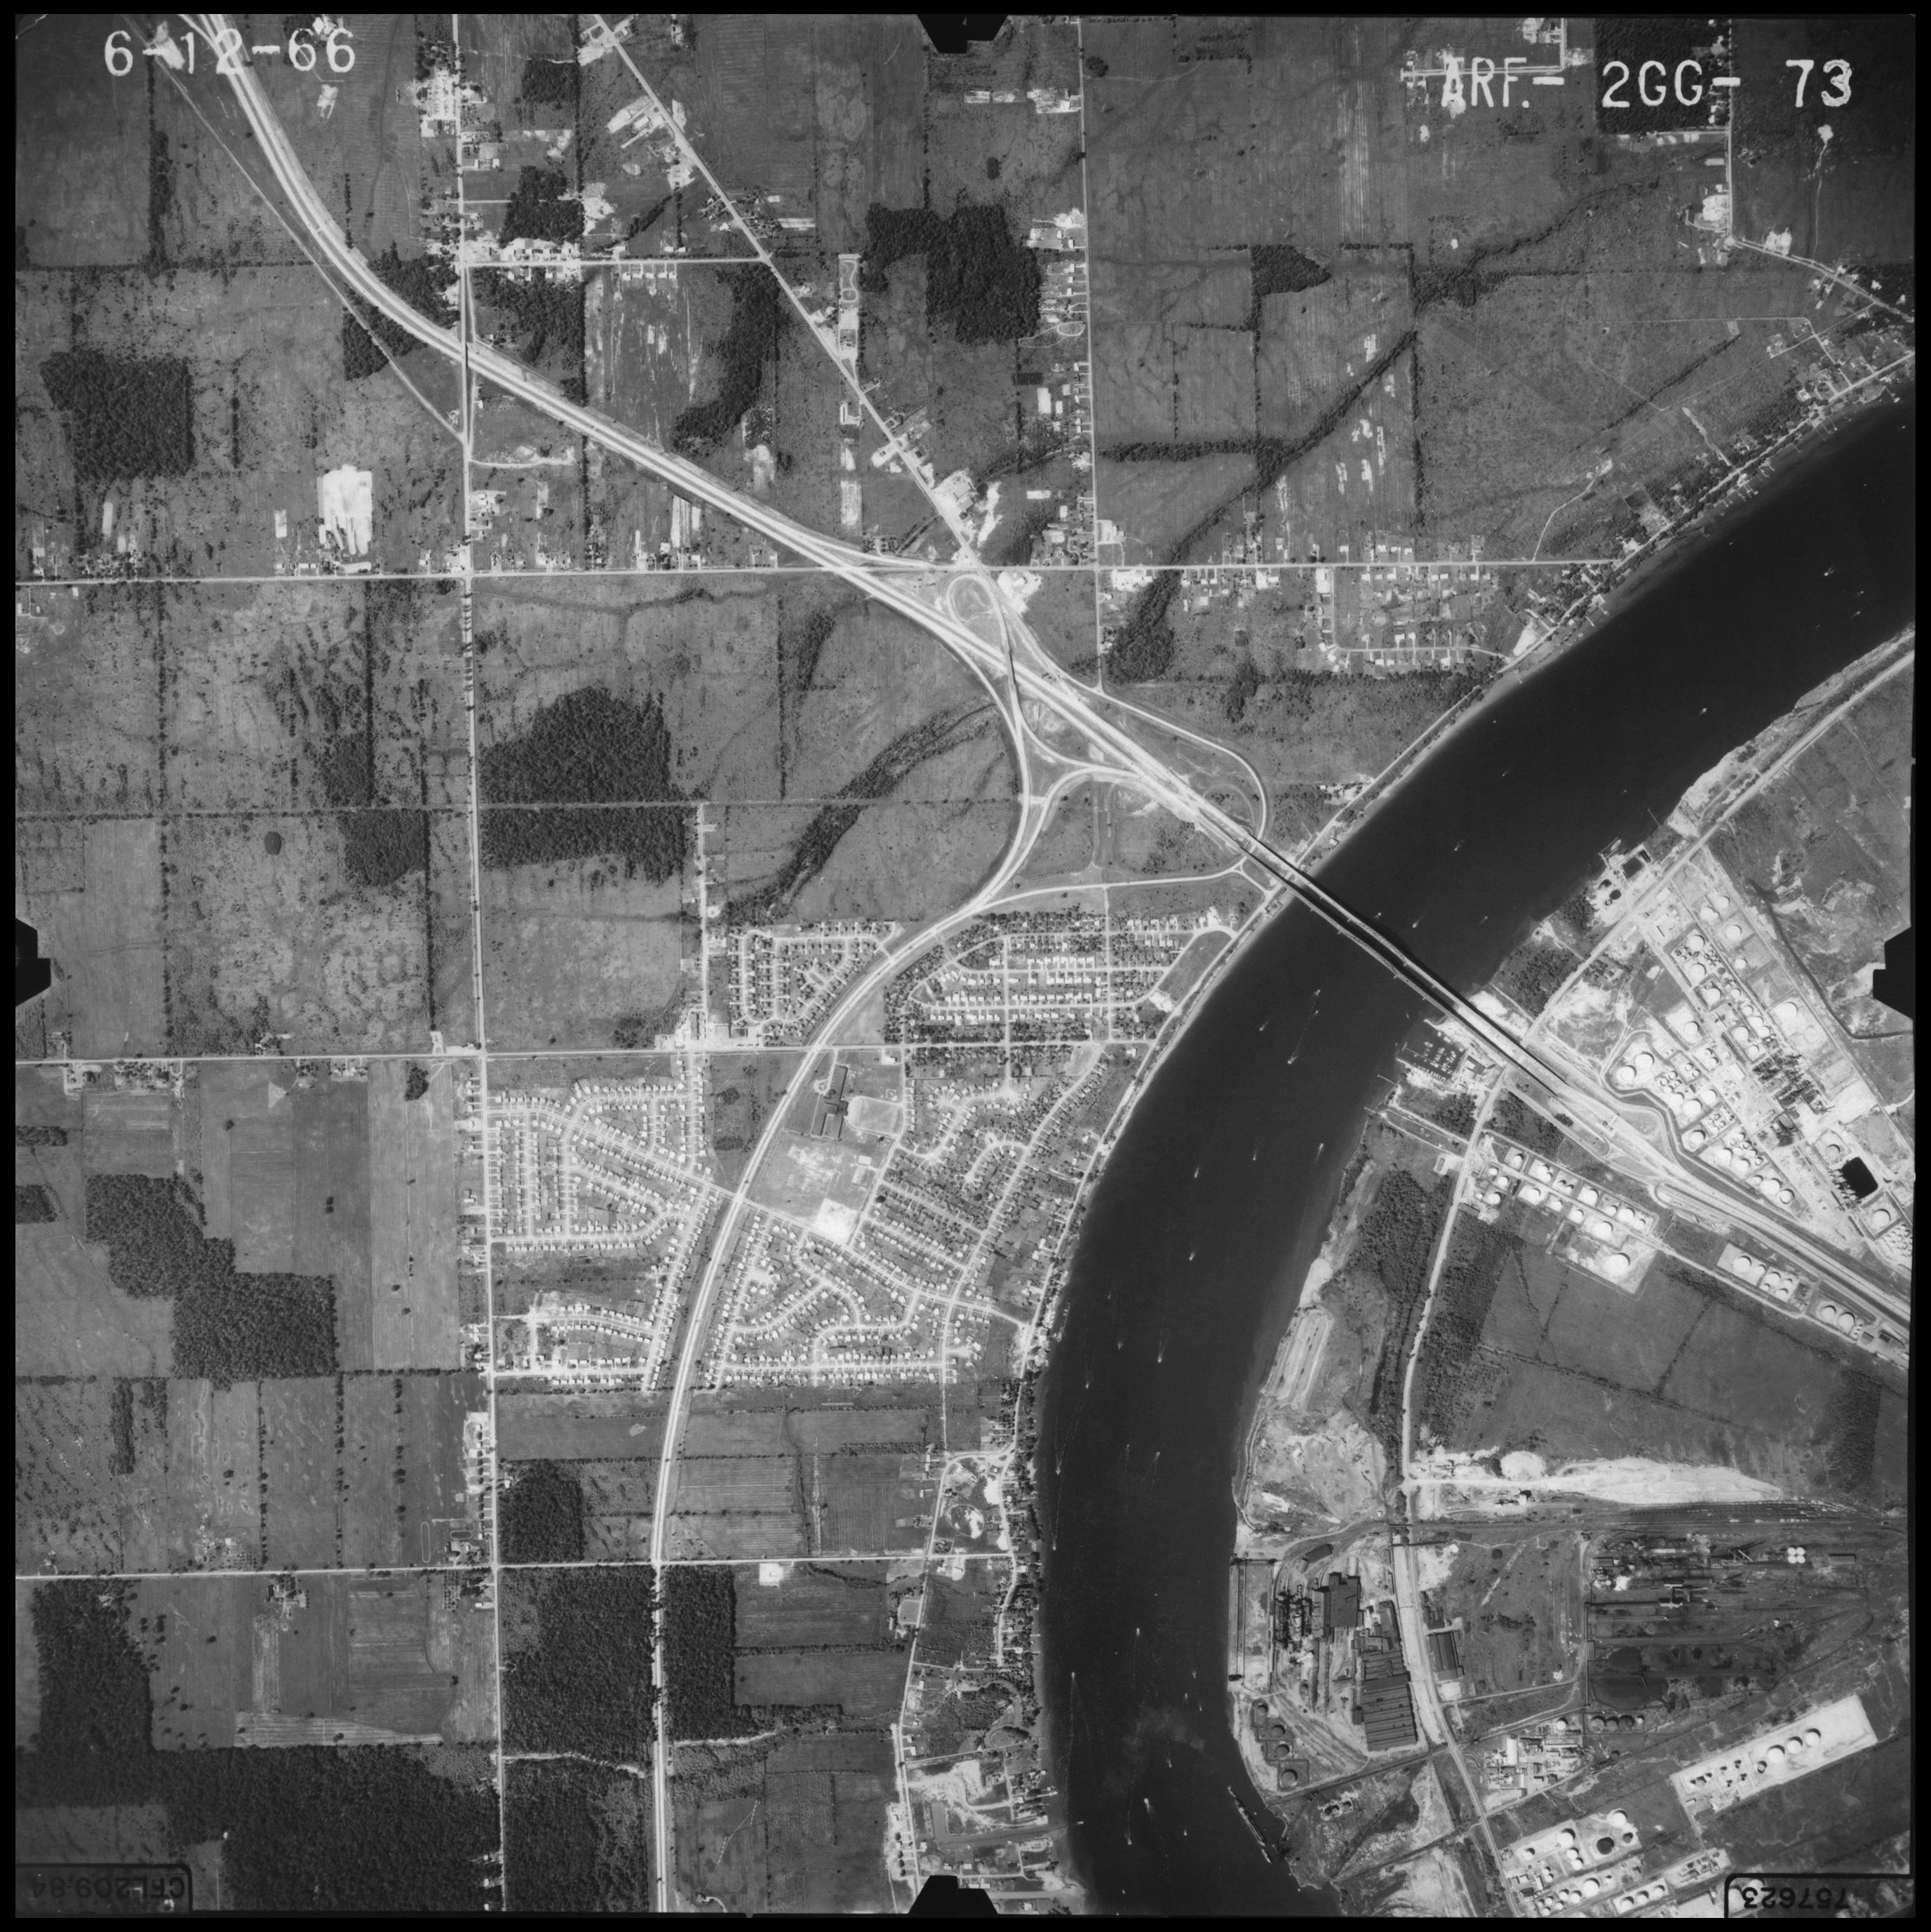 Aerial photo showing south Grand Island Bridges in 1966